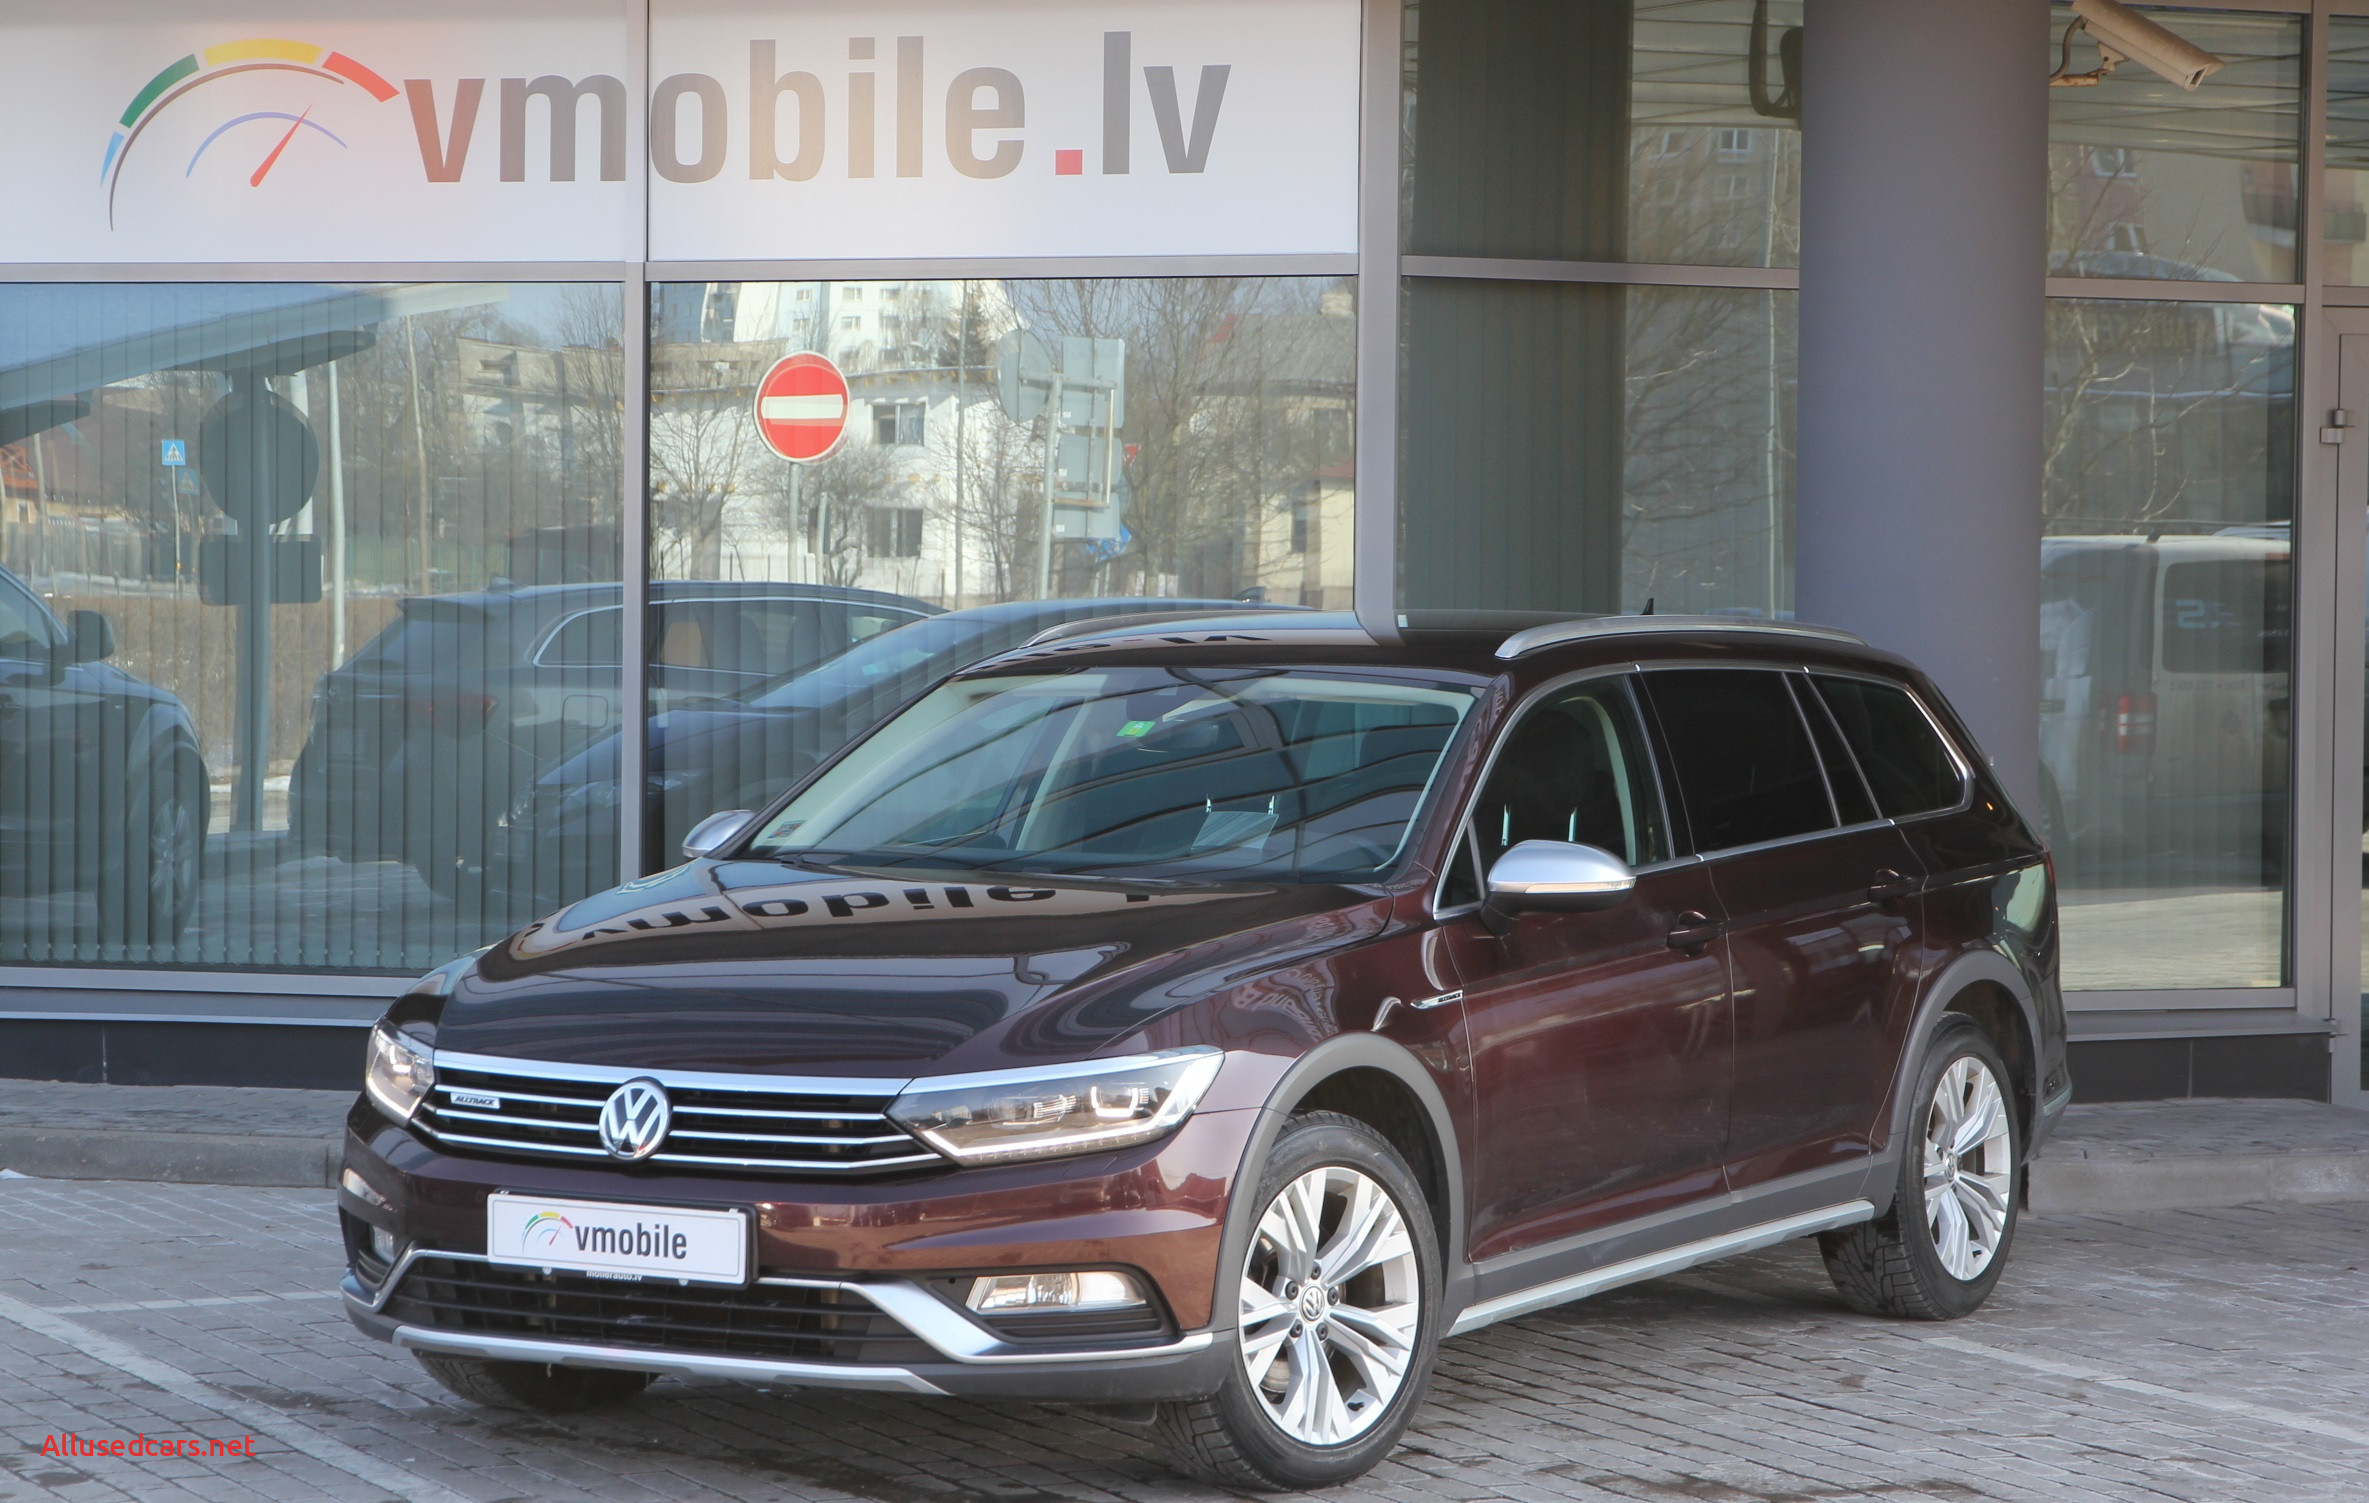 Vw Passat 2015 Best Of Vmobile Lv